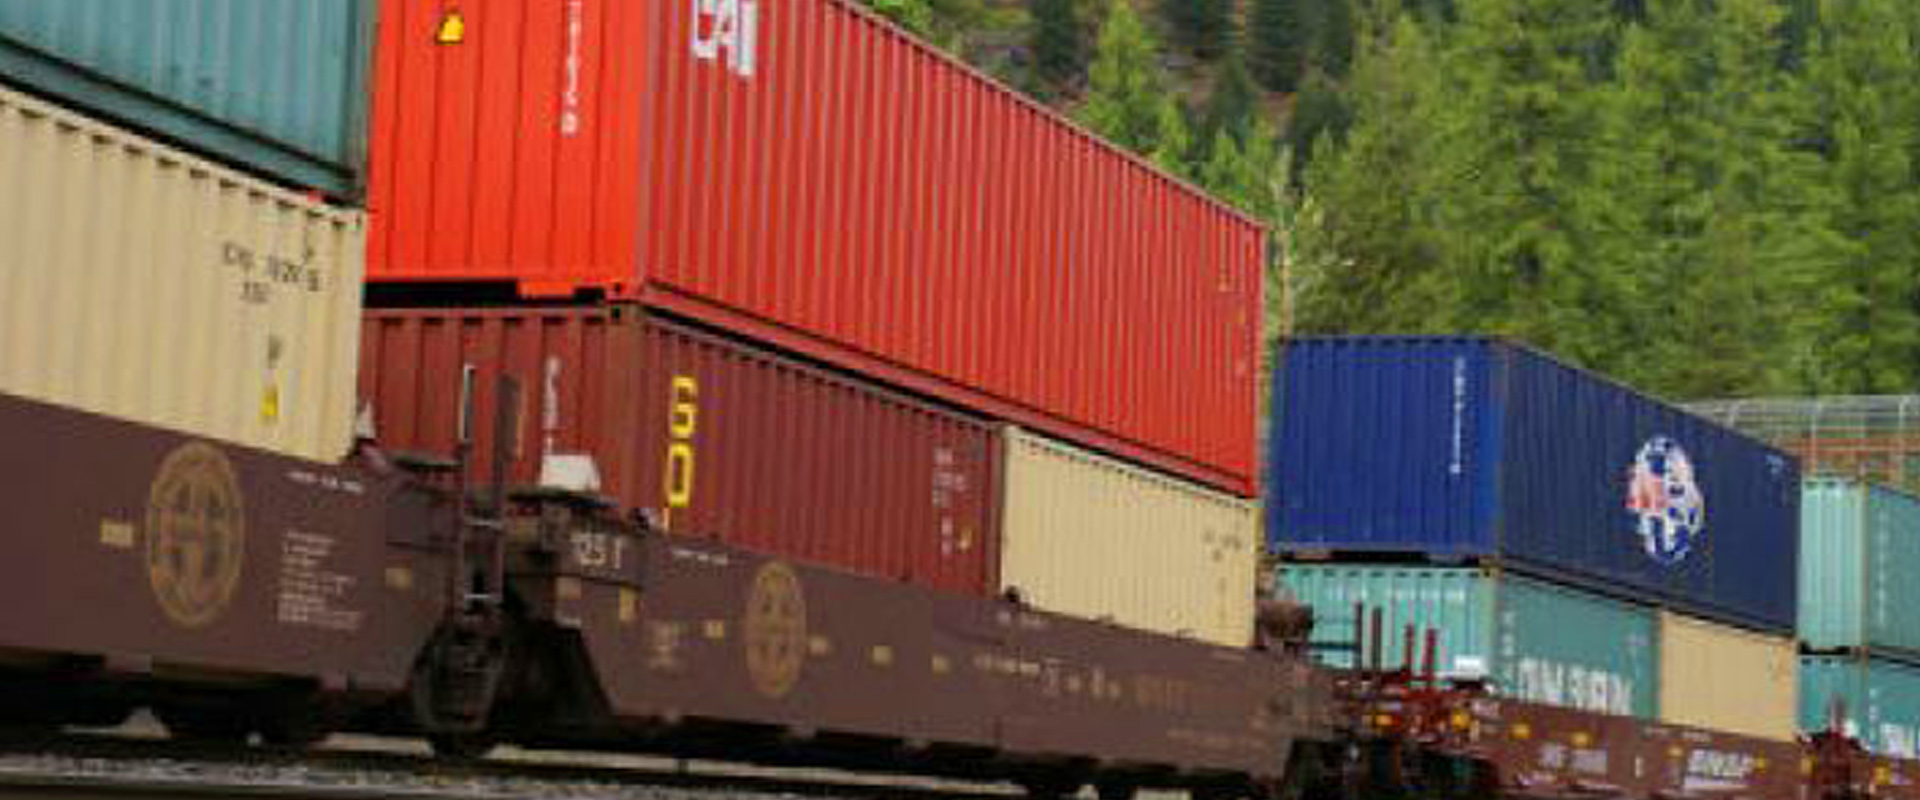 Intermodal / Rail Transportation